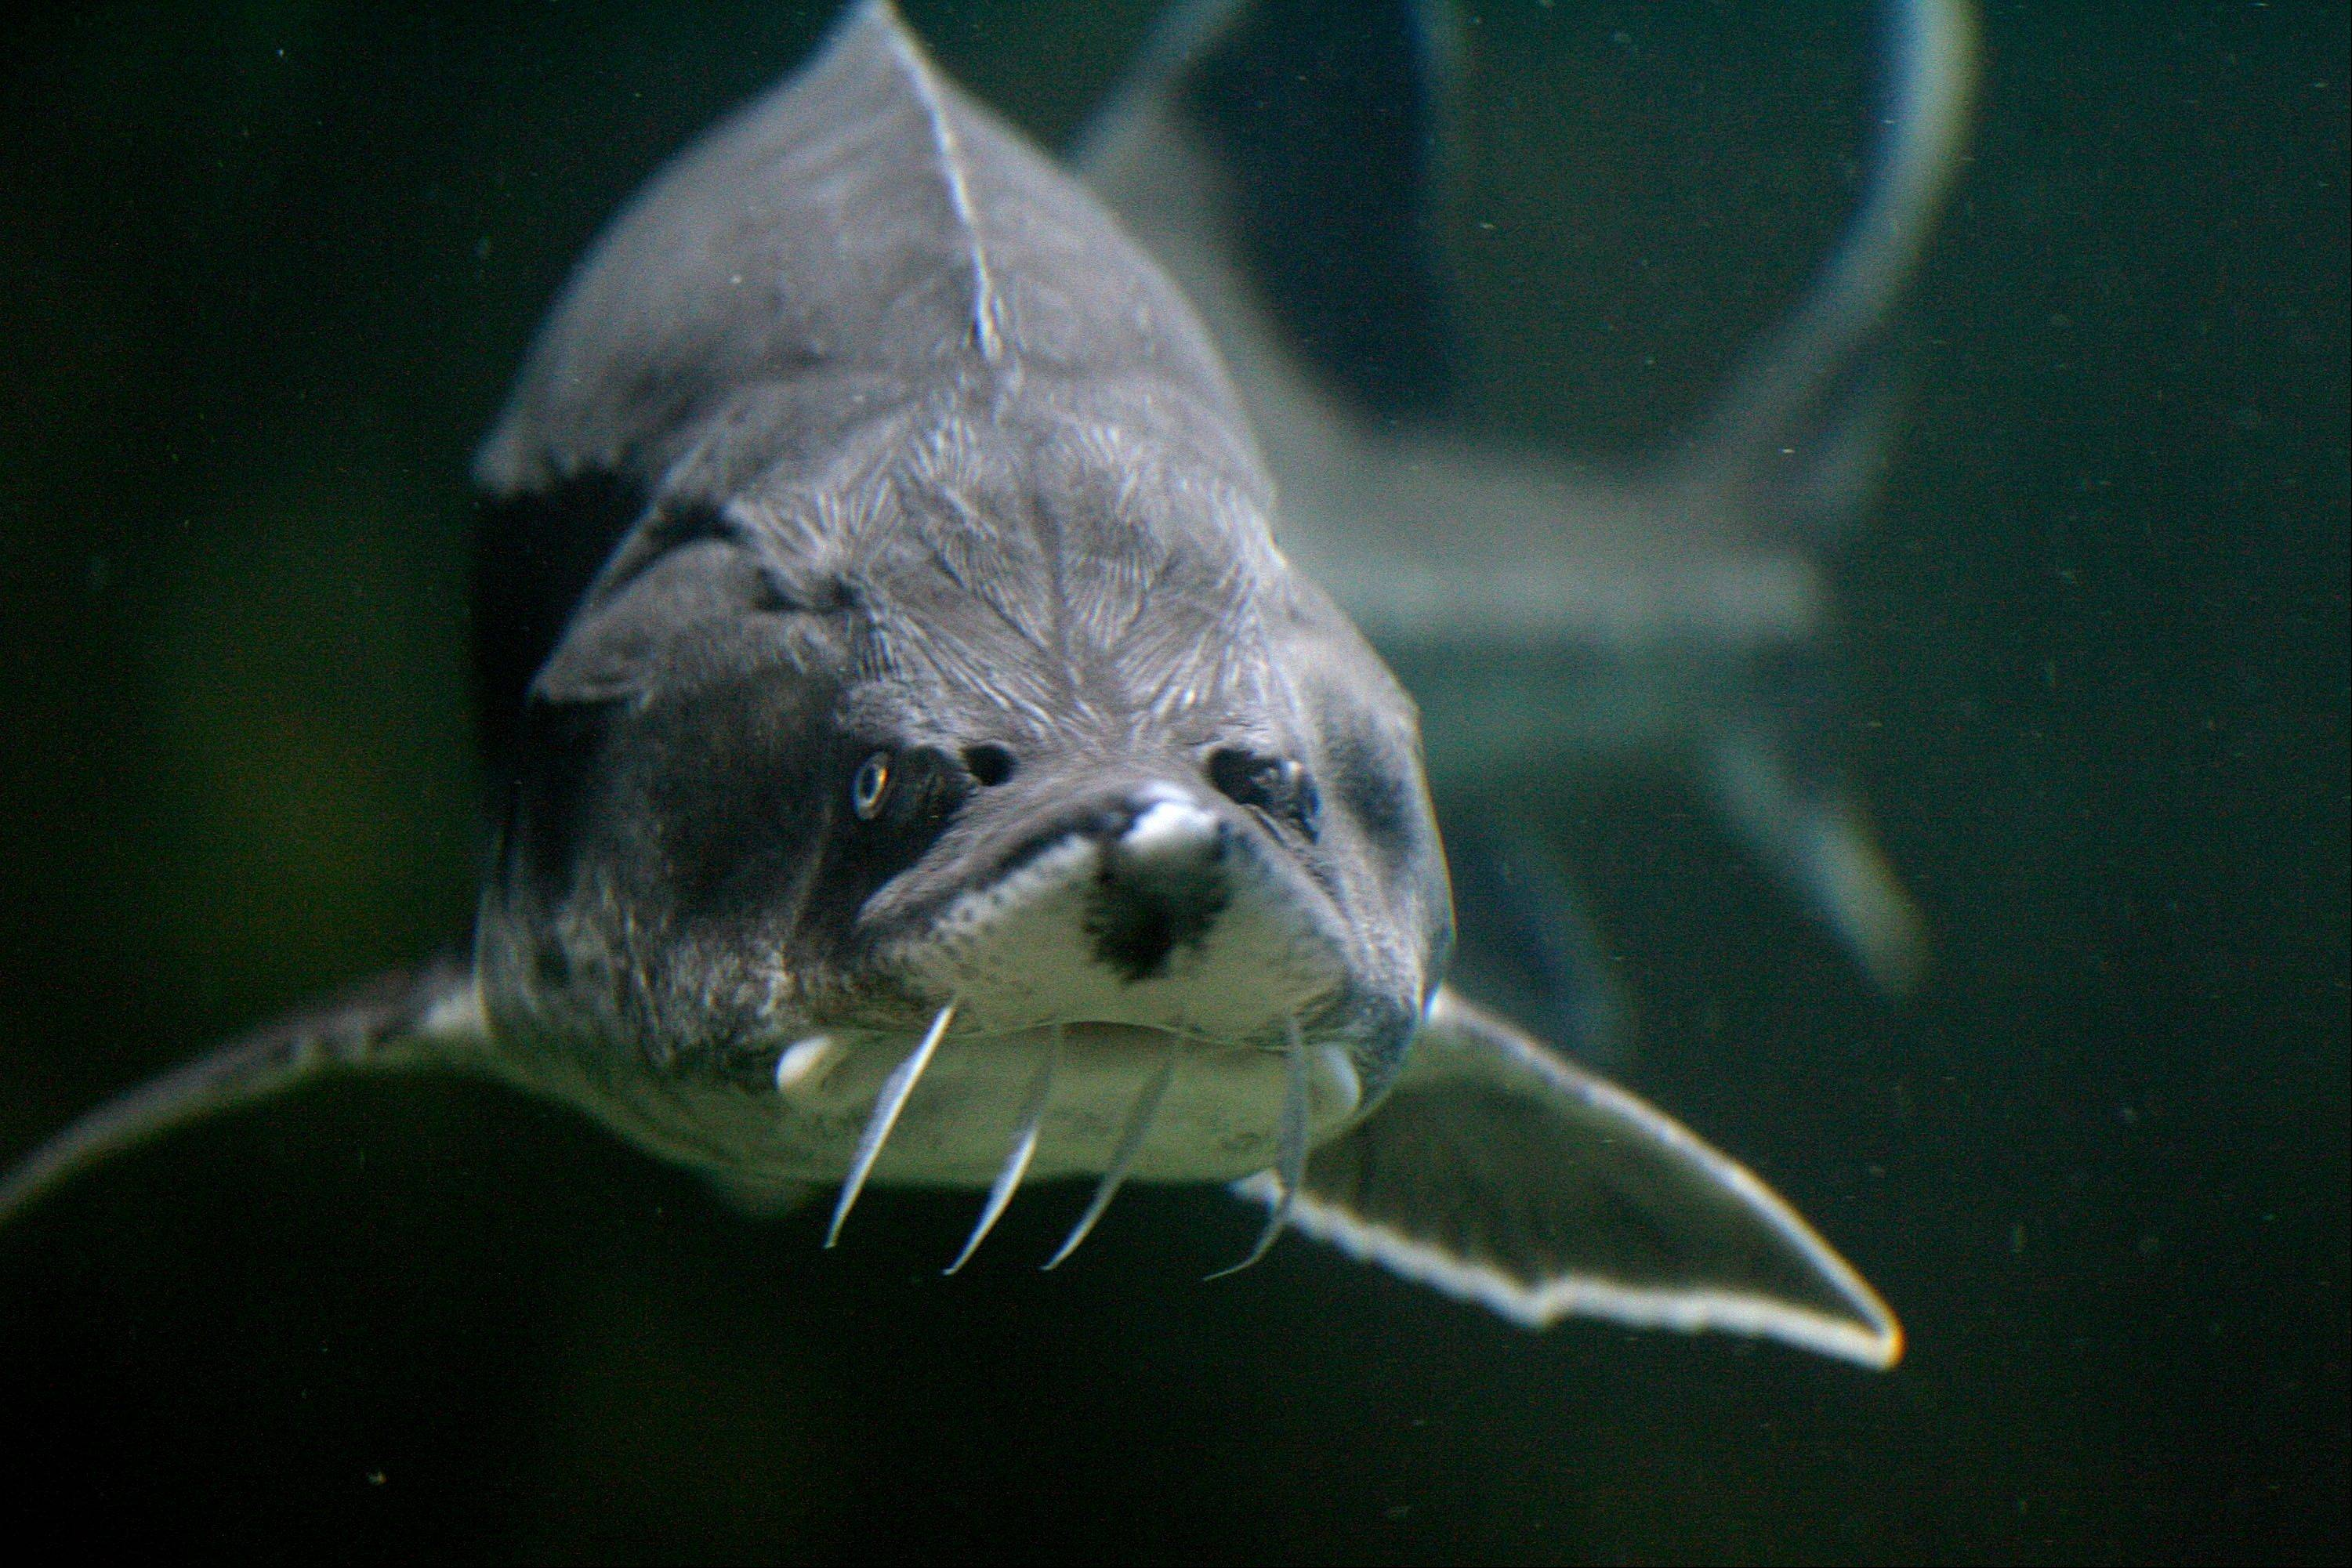 A sturgeon swims in an aquarium in the Danube River port city of Tulcea, Romania. Sturgeon thrived in the Danube River for 200 million years, but, like in the Great Lakes, their numbers are dwindling.